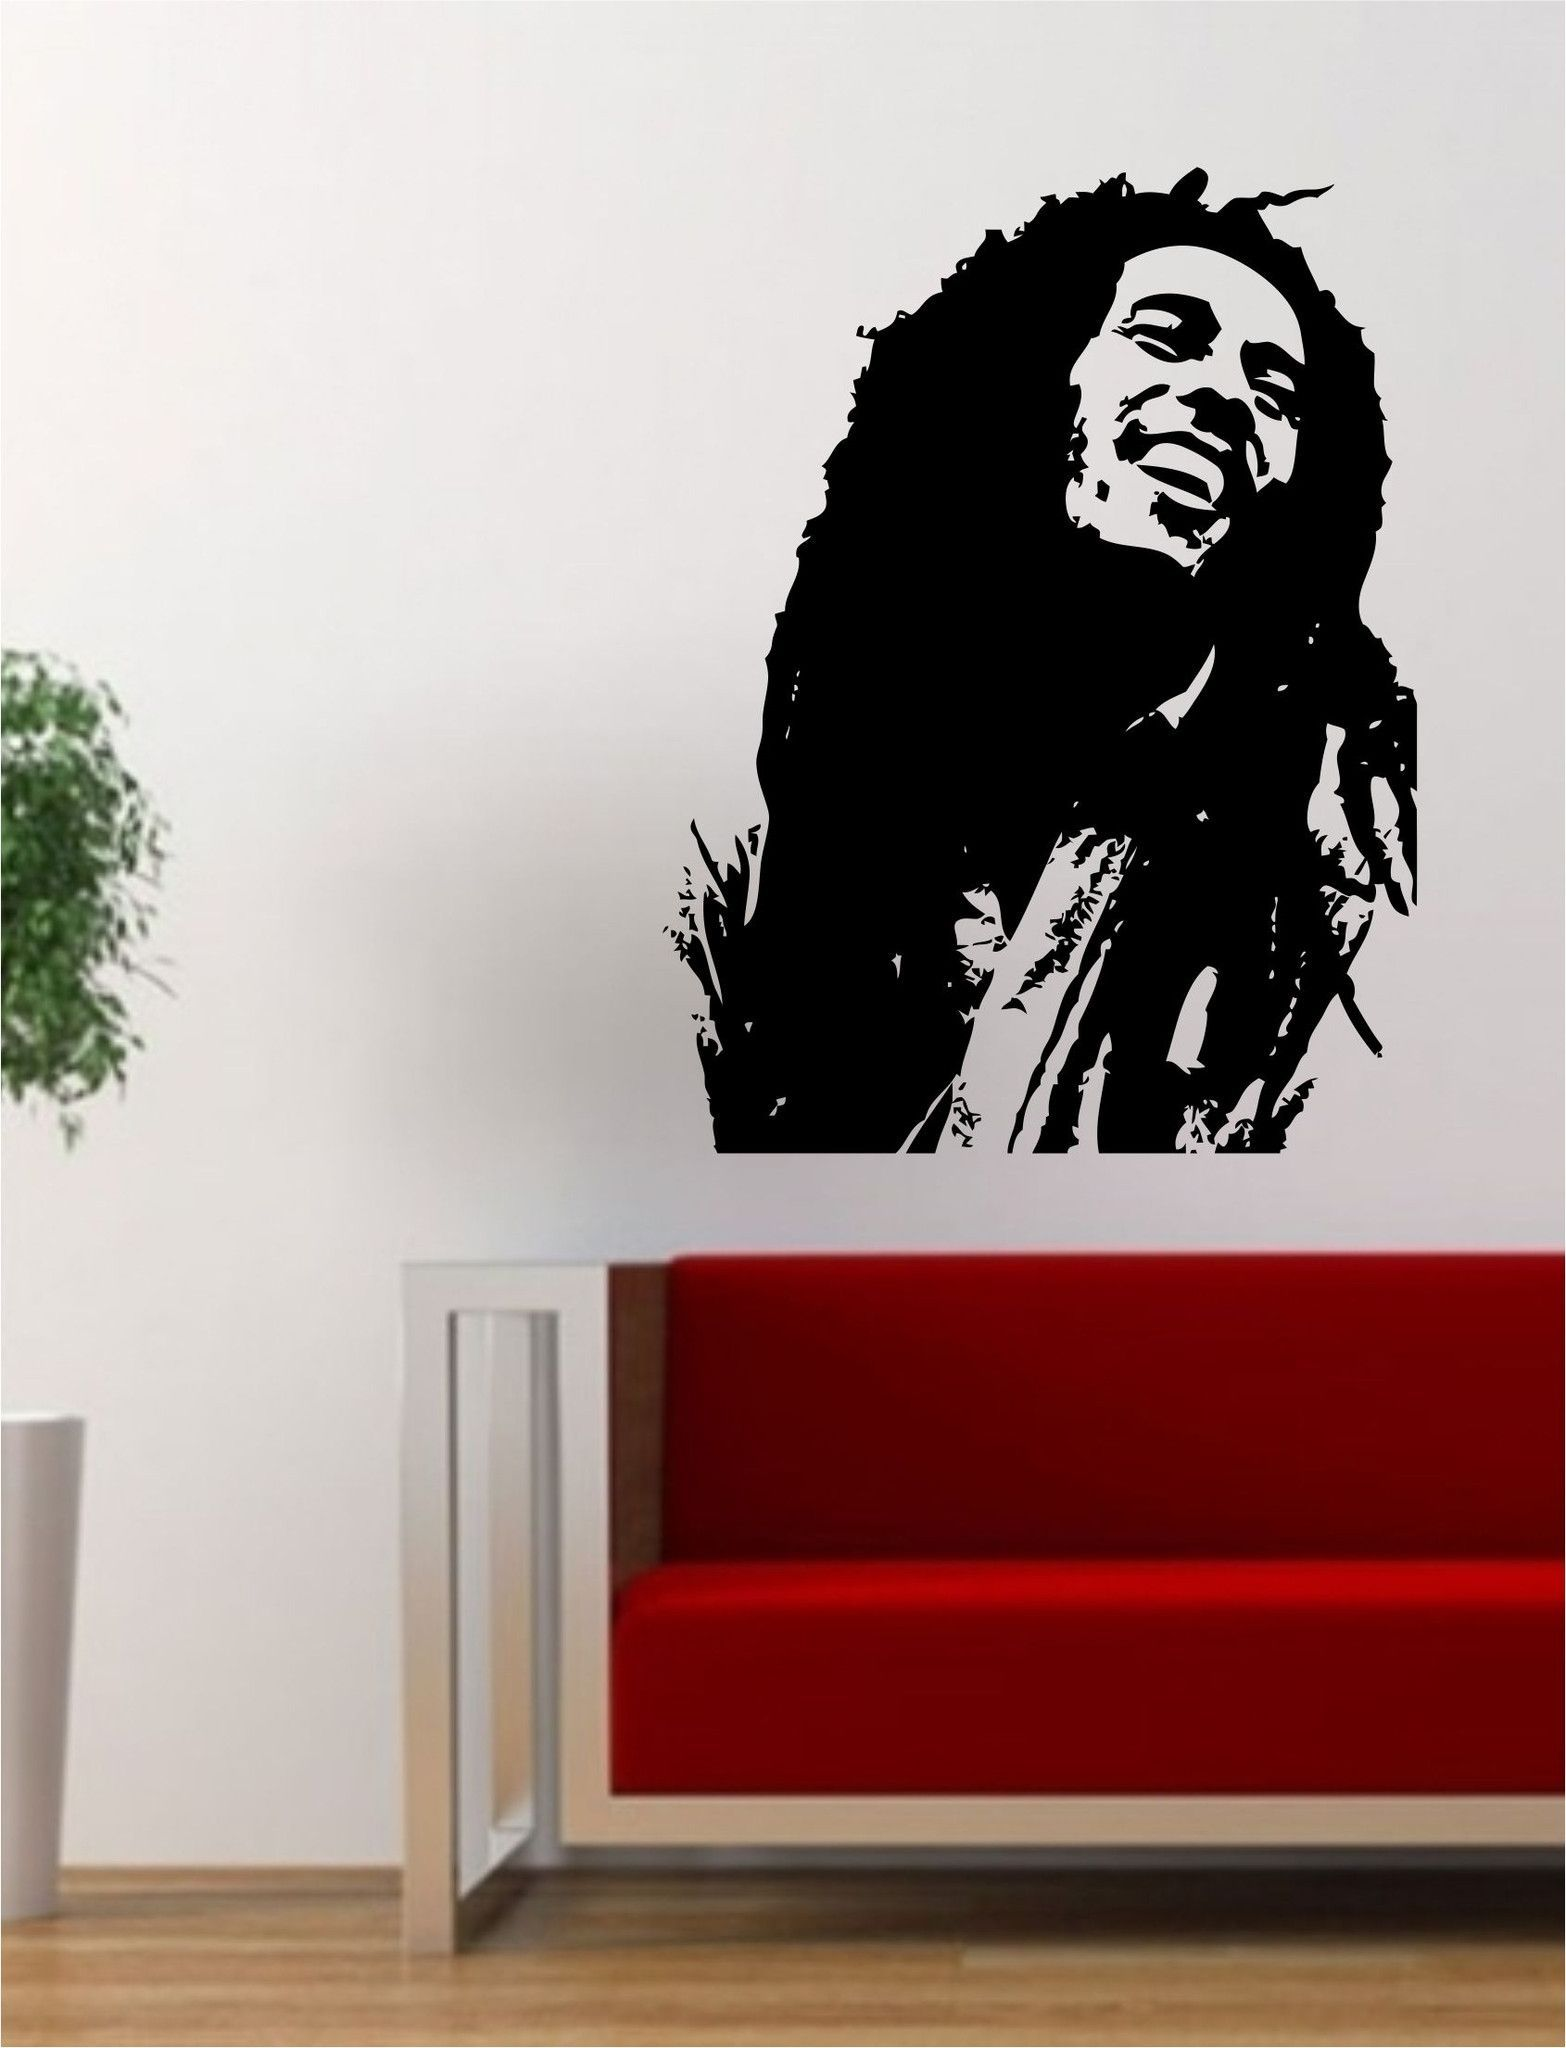 Bob marley version 1 people music reggae rasta decal sticker wall vinyl decor art